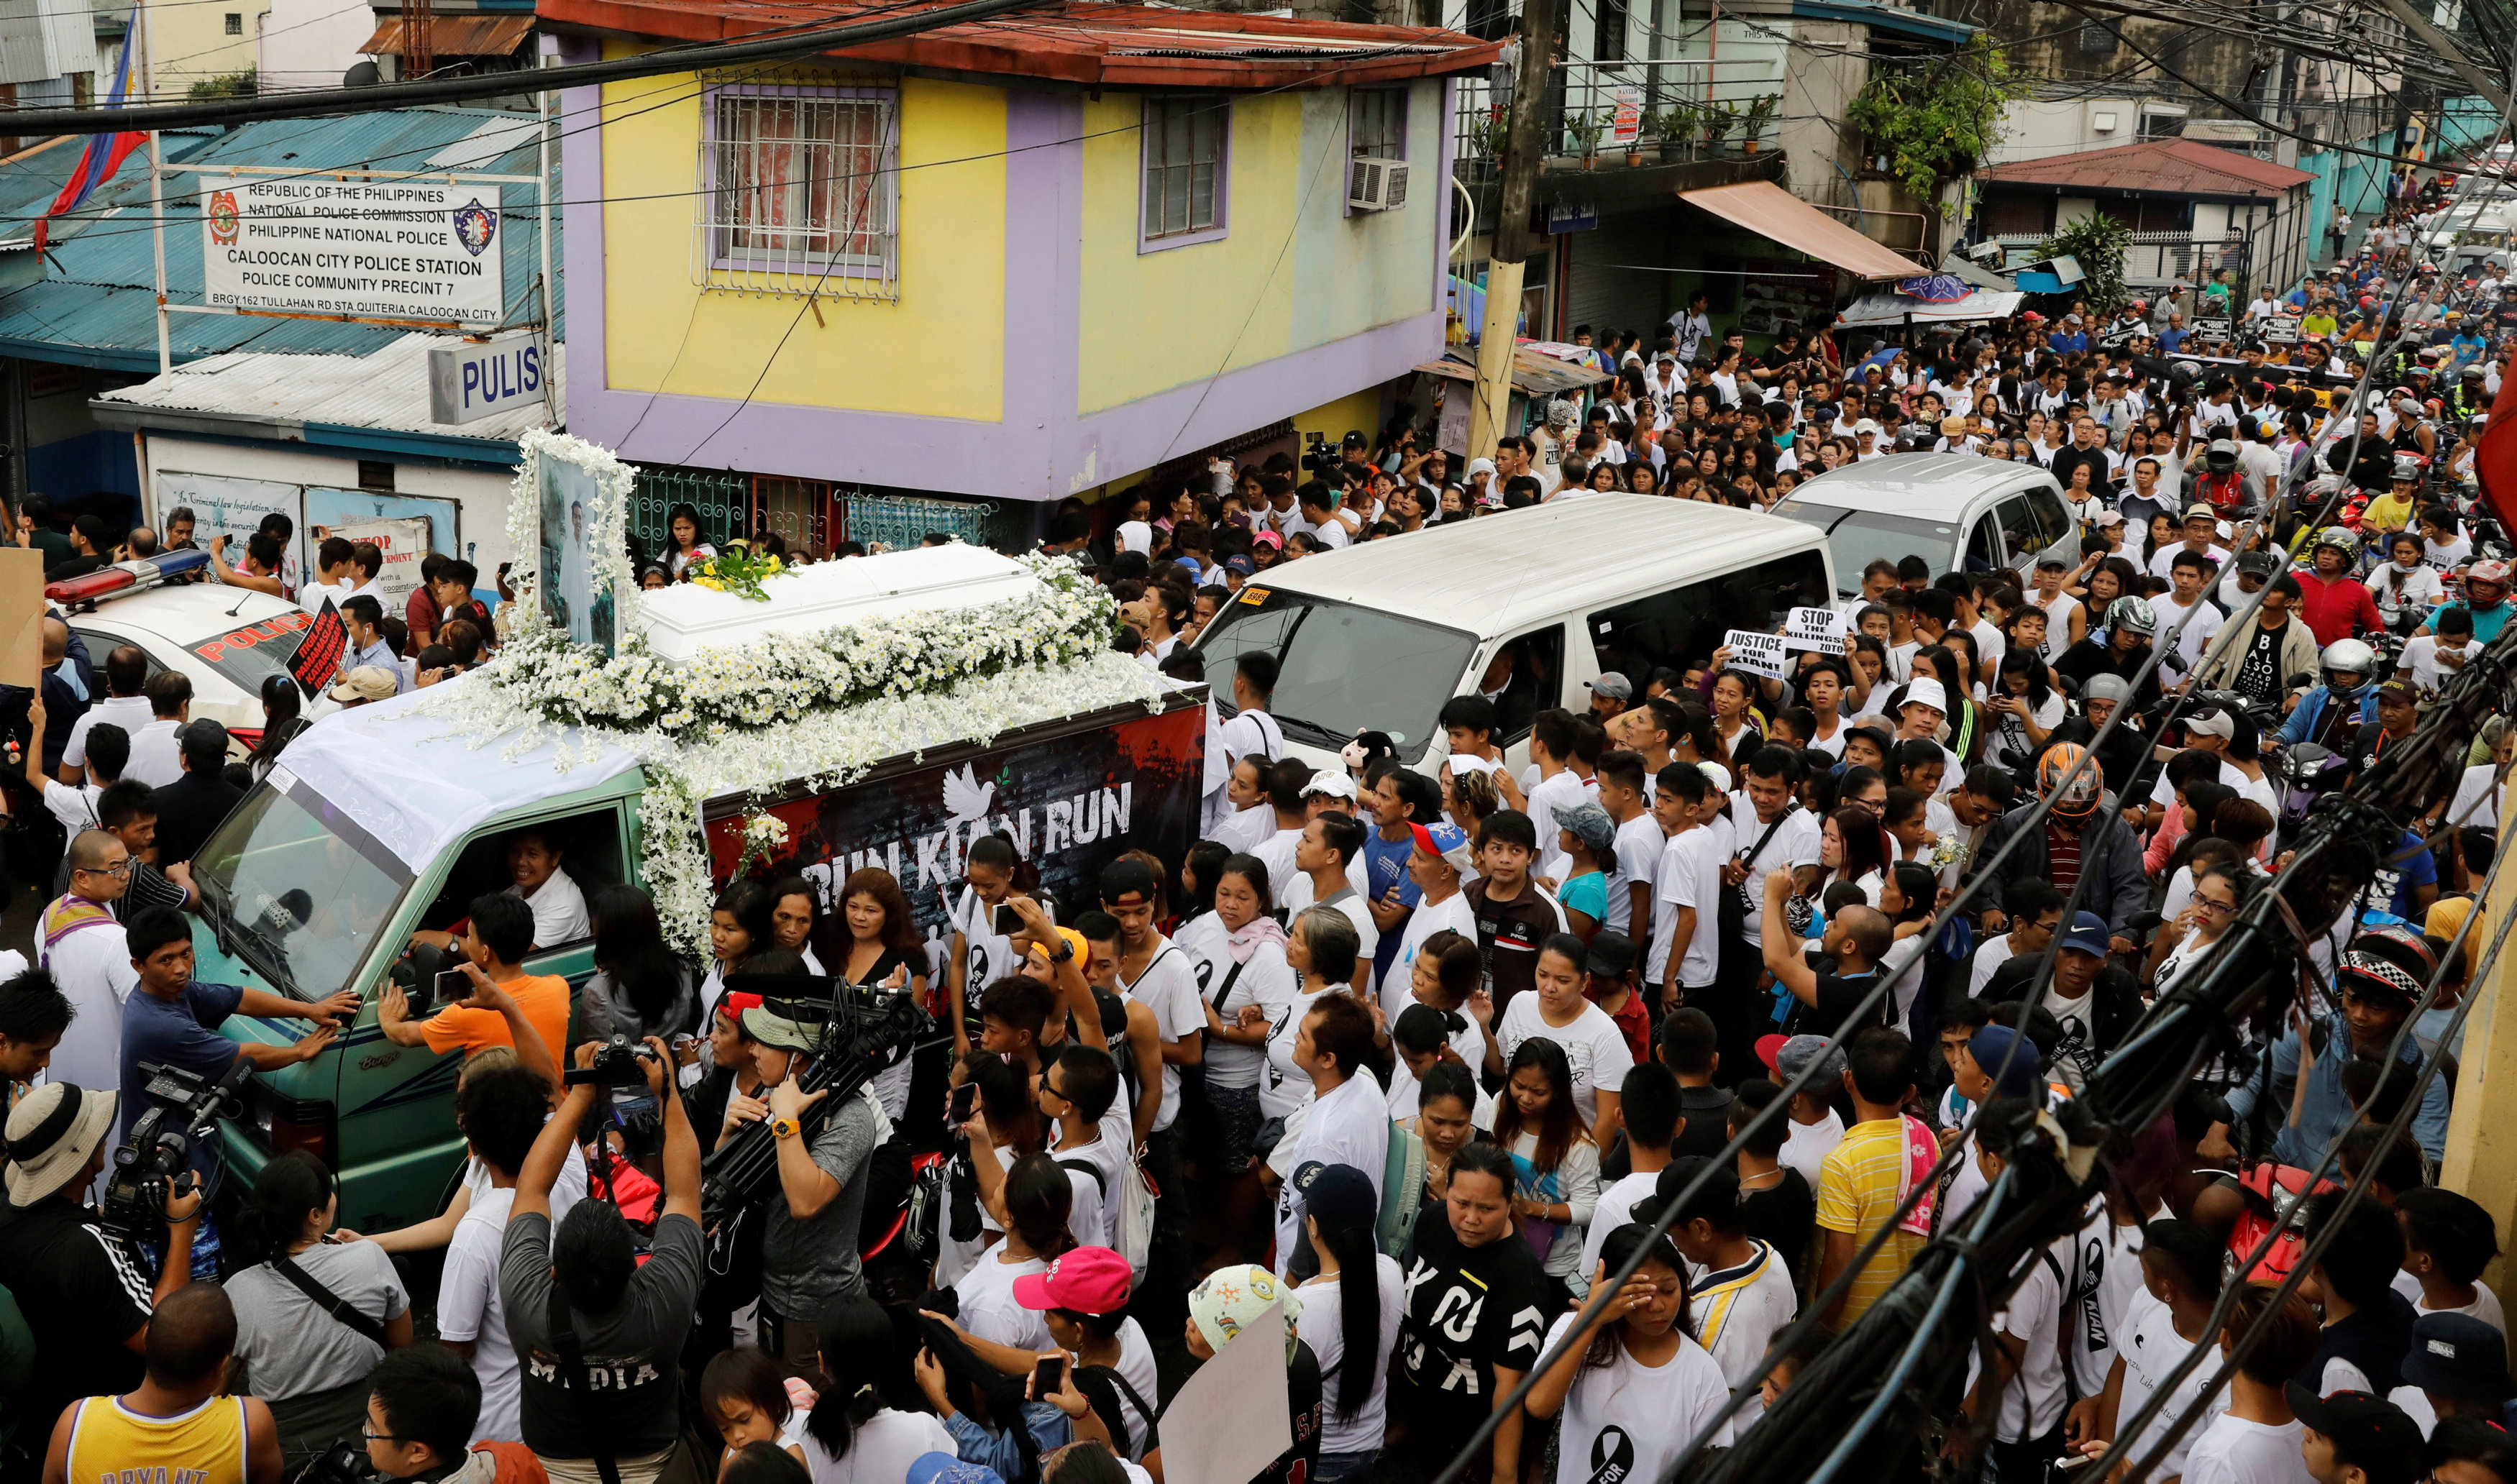 The flower-decked hearse of Kian delos Santos, a 17-year-old student who was shot during anti-drug operations, stops in front of a police station during the funeral march in Caloocan, Metro Manila, Philippines August 26, 2017. REUTERS/Erik De Castro